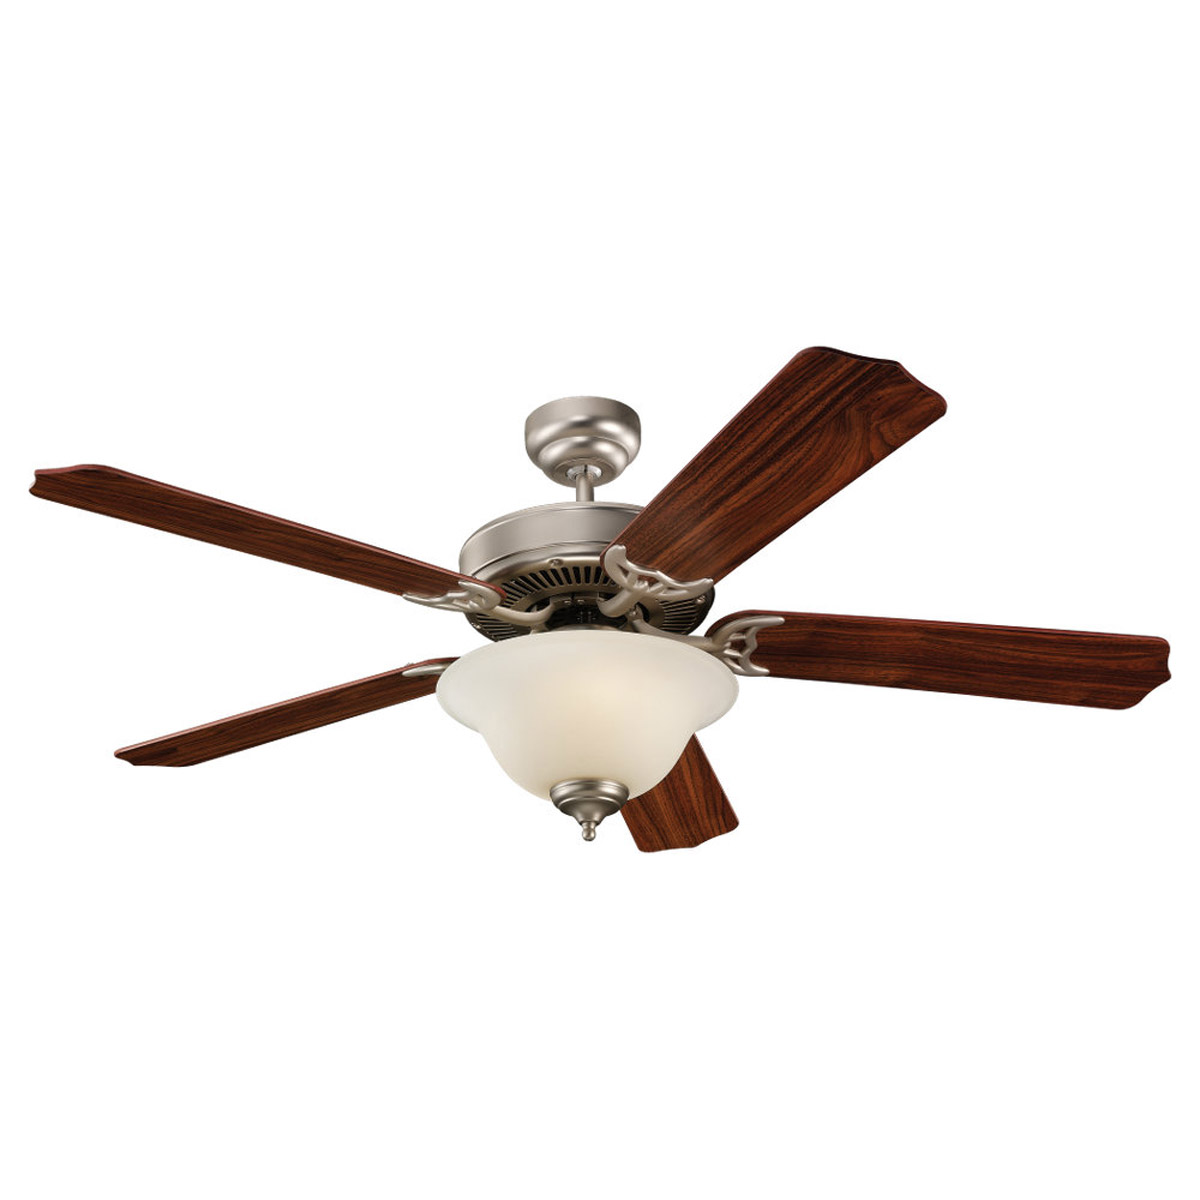 Sea Gull Lighting Quality Max Plus 2 Light Fluorescent Ceiling Fan in Brushed Pewter 15030BLE-892 photo